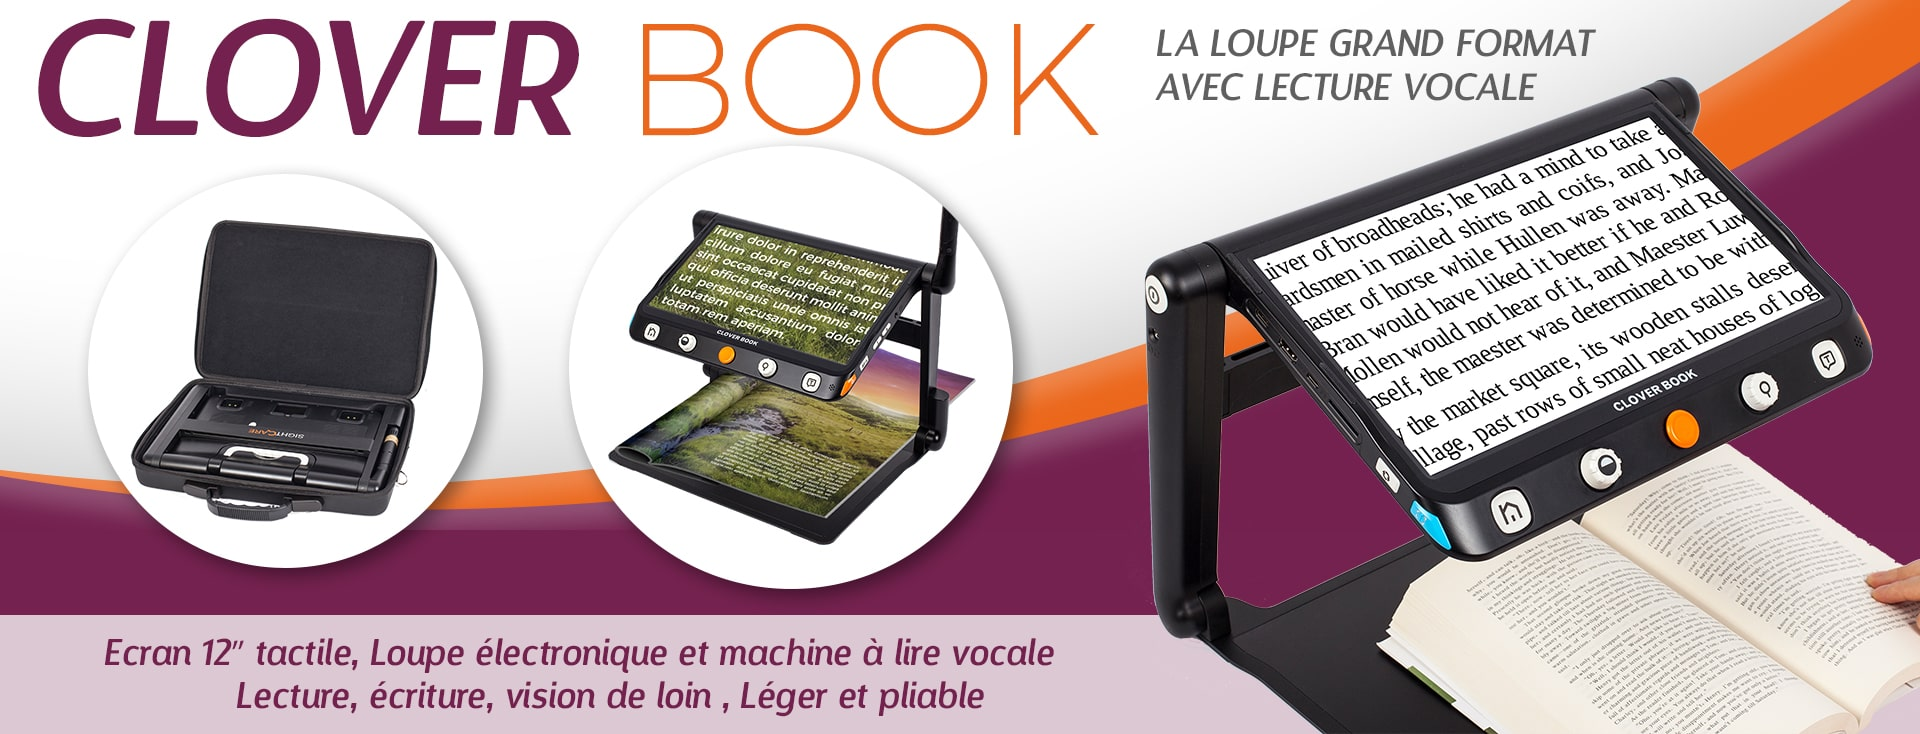 La loupe électronique grand format CLOVER BOOK